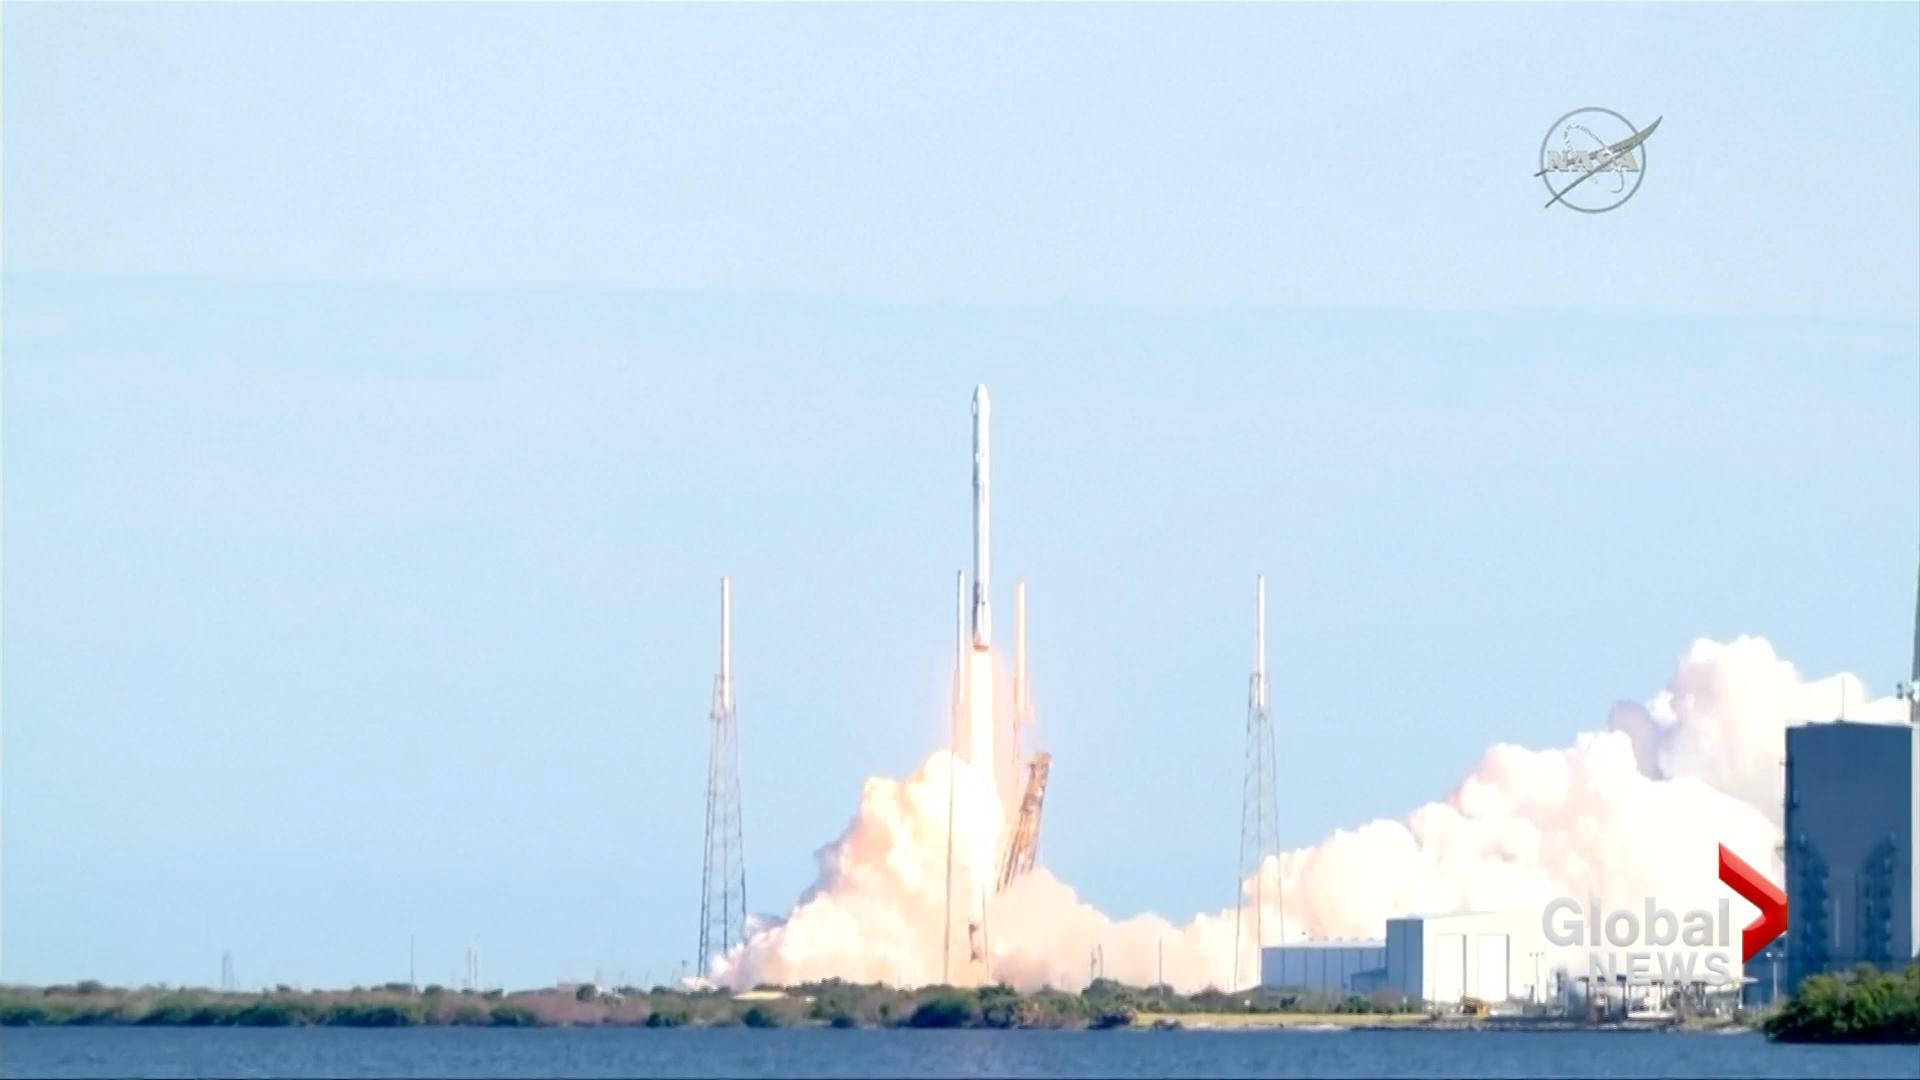 SpaceX Launches Previously Used Rocket And Spacecraft In Unprecedented Mission